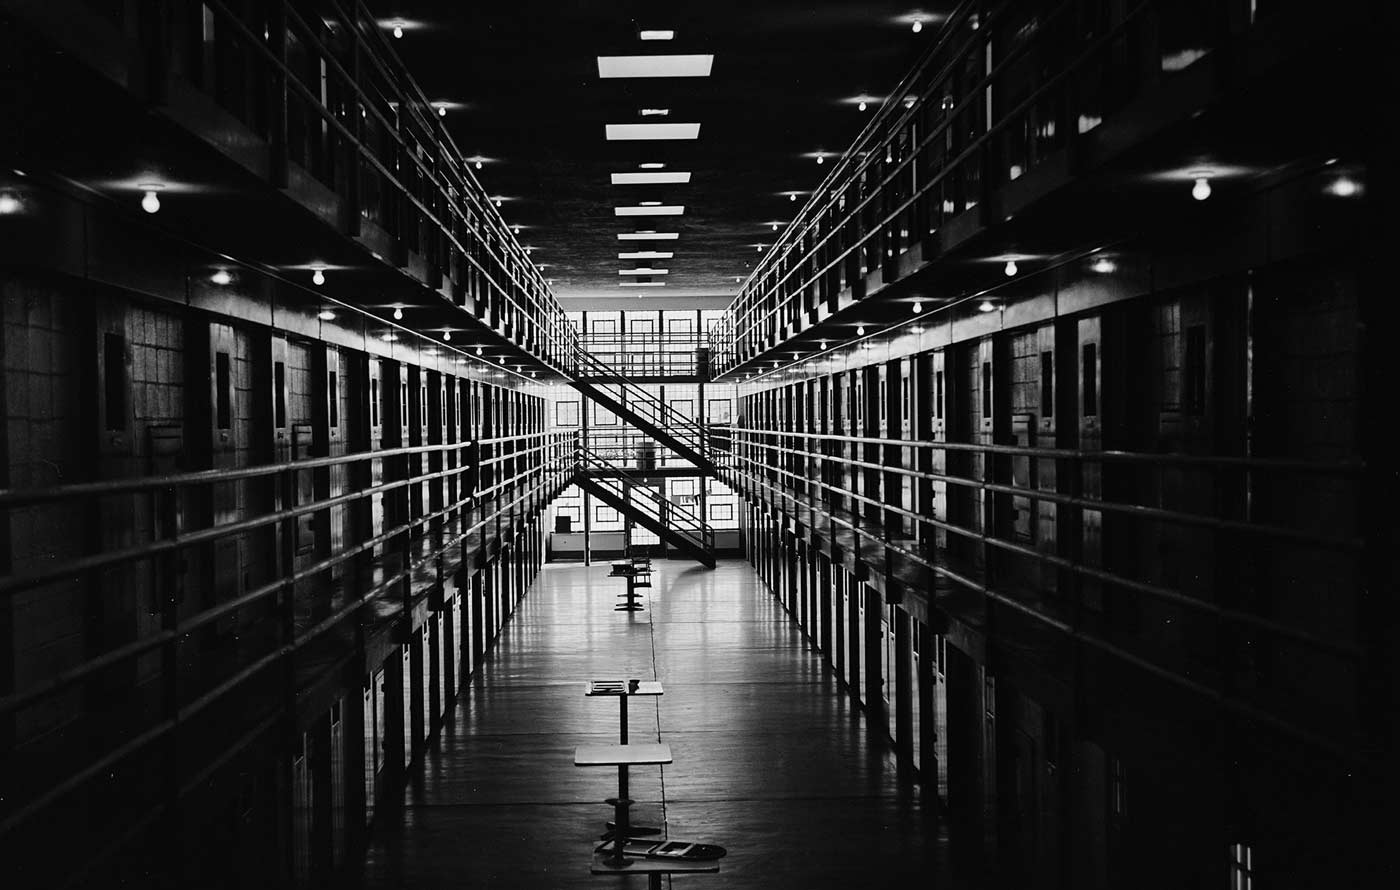 prisons and security Contraband violence inmate and officer safety these are just a few of the issues confronting security professionals working in today's prisons, jails and other correctional facilities.